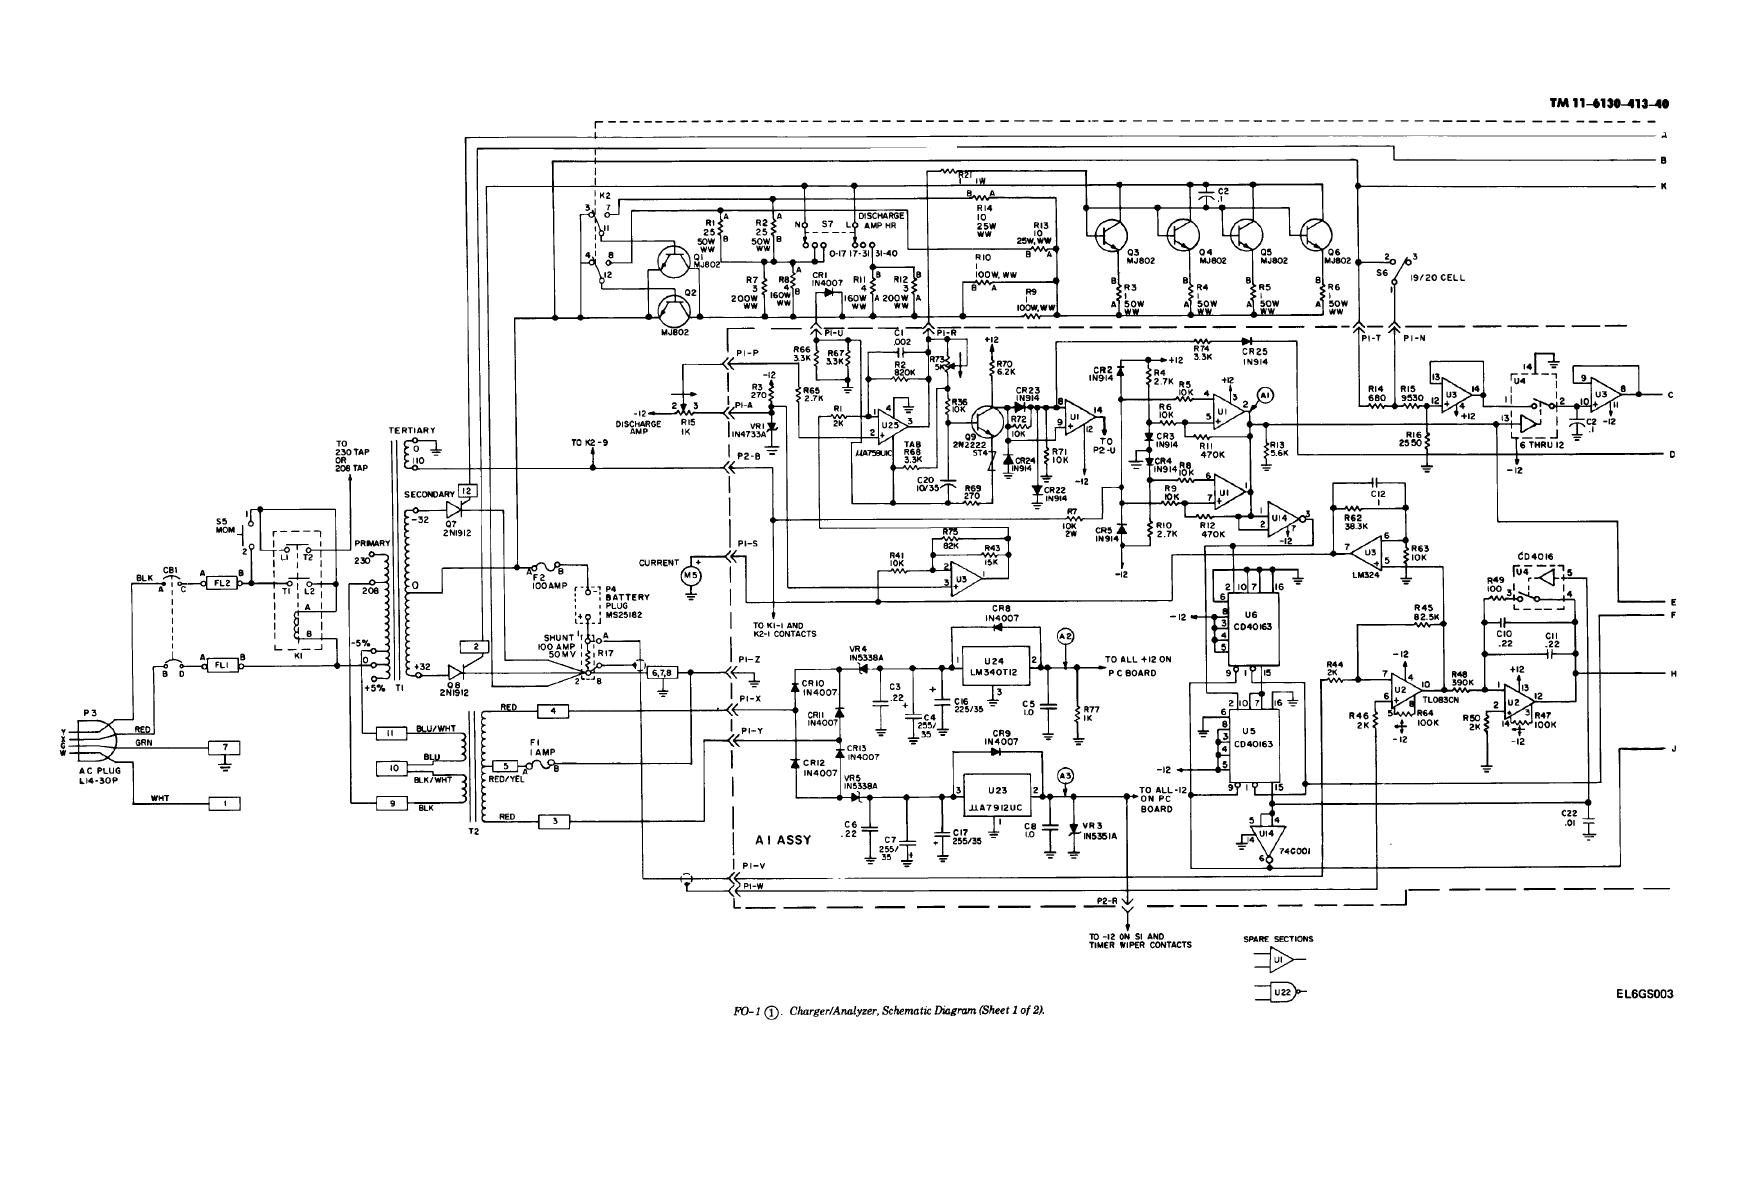 FO-1 Charger/Analyzer,Schematic Diagram (Sheet 1 of 2 )